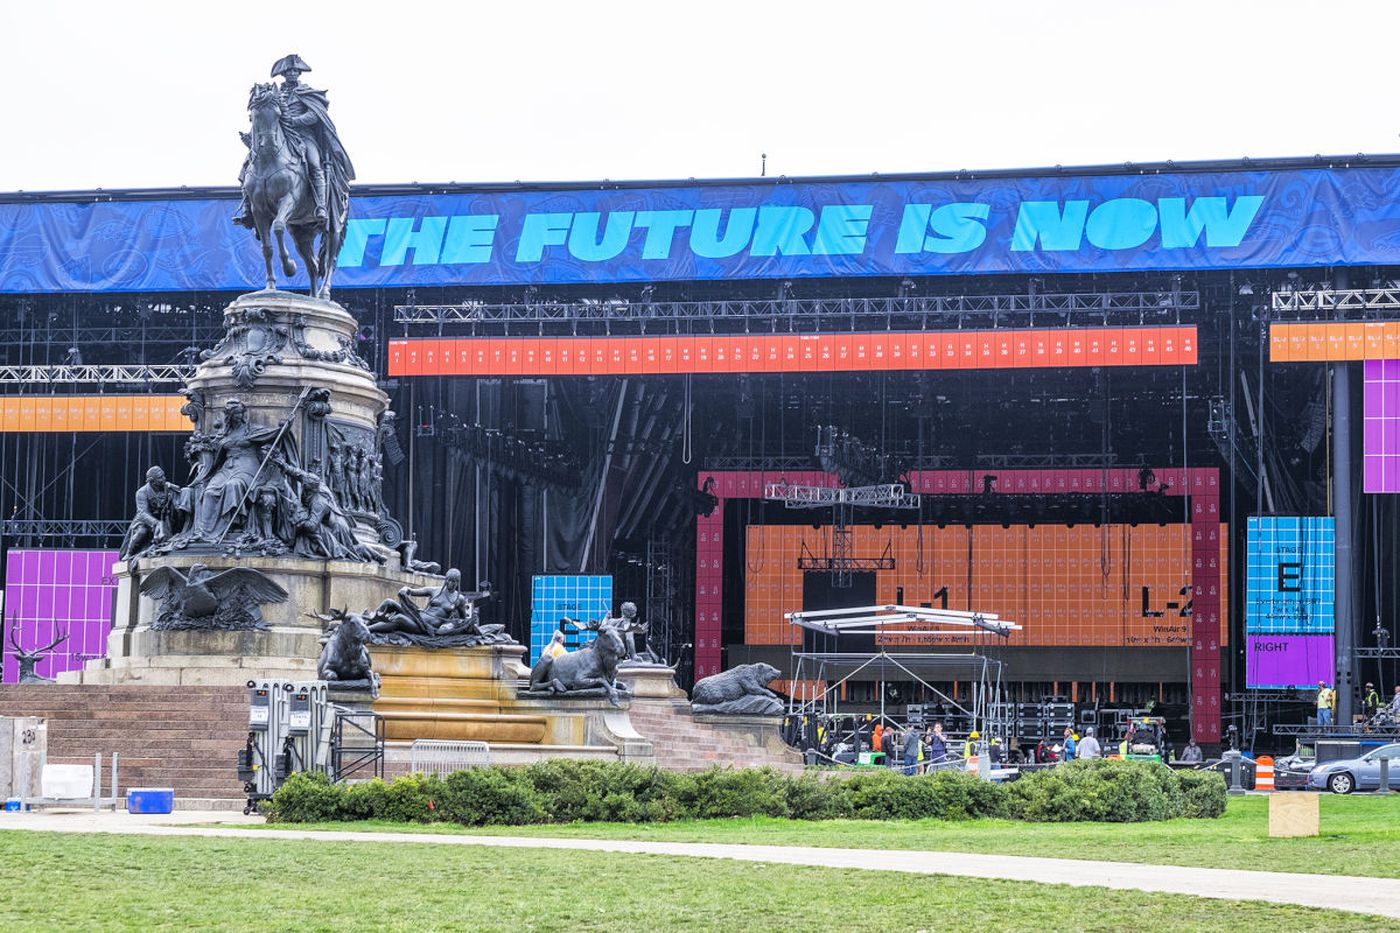 Turning the NFL draft into grand theater, with Philadelphia as the stage